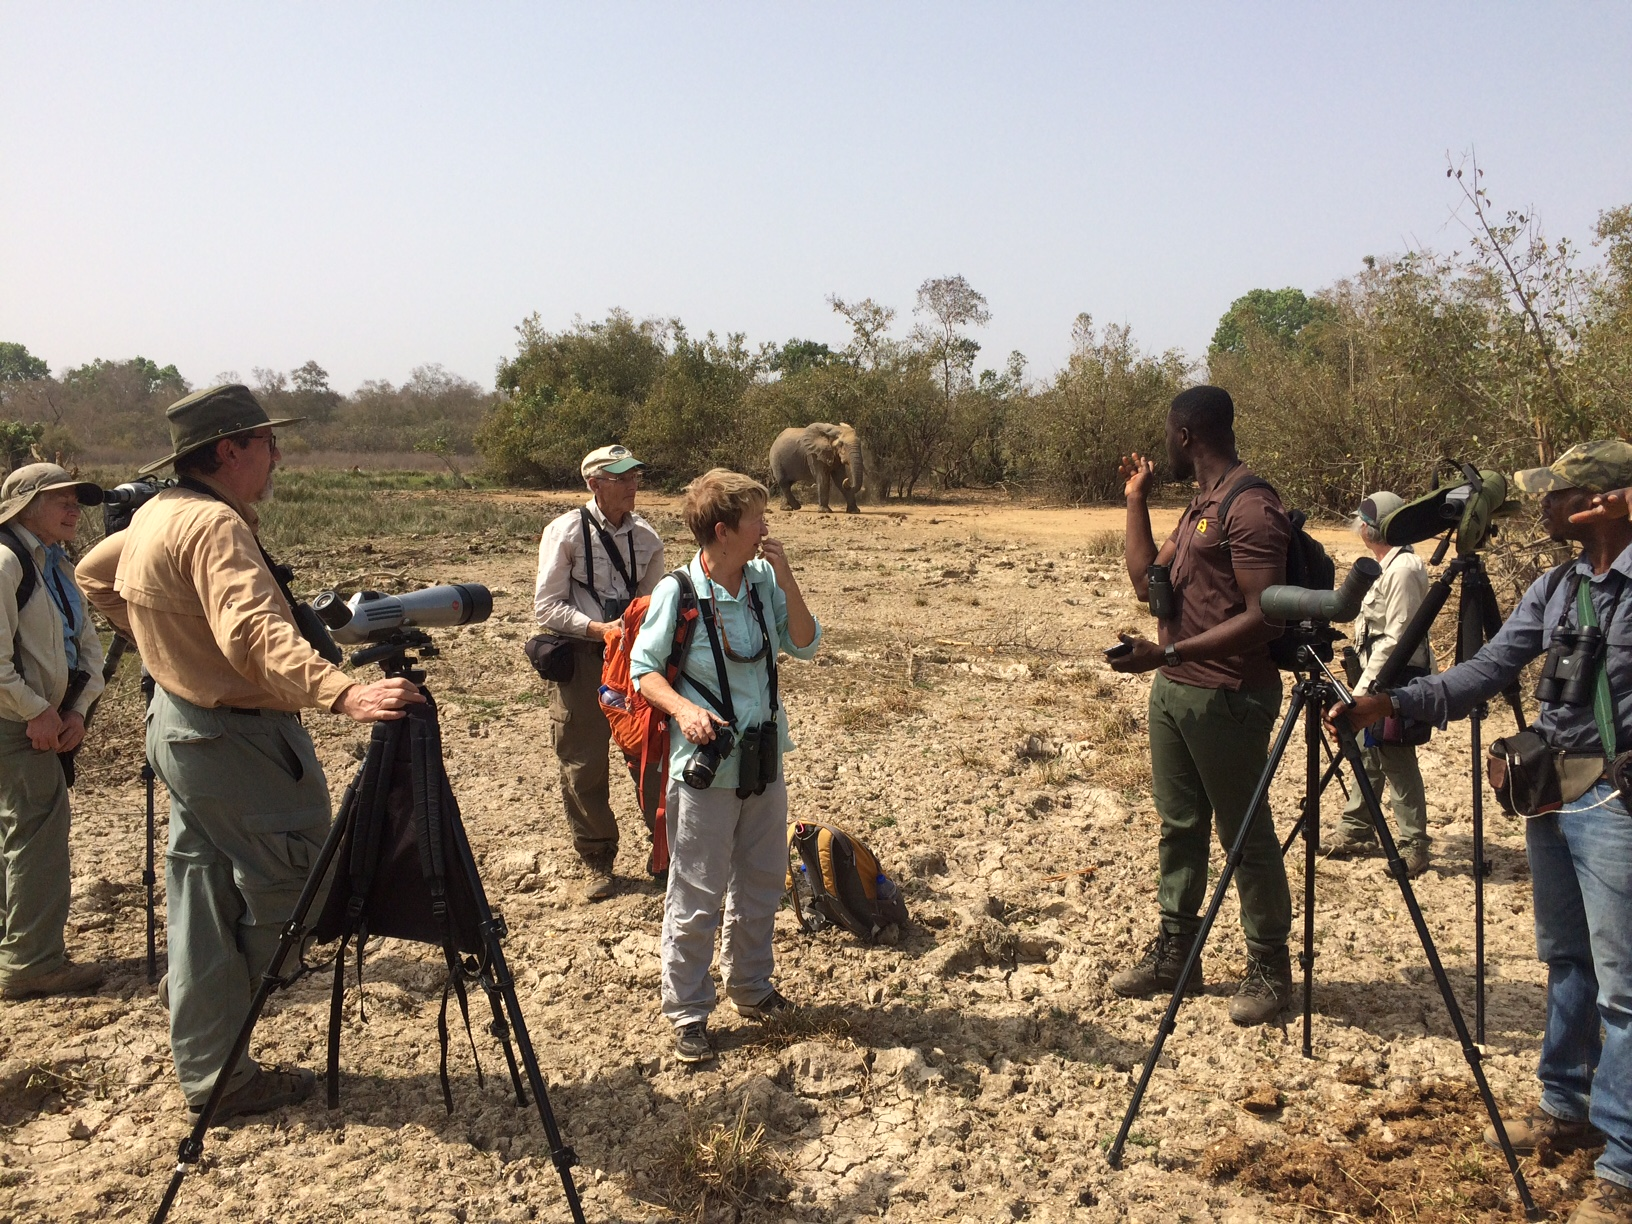 Birding with elephant, Mole National Park, January 2018 (Jeff Marks photo)